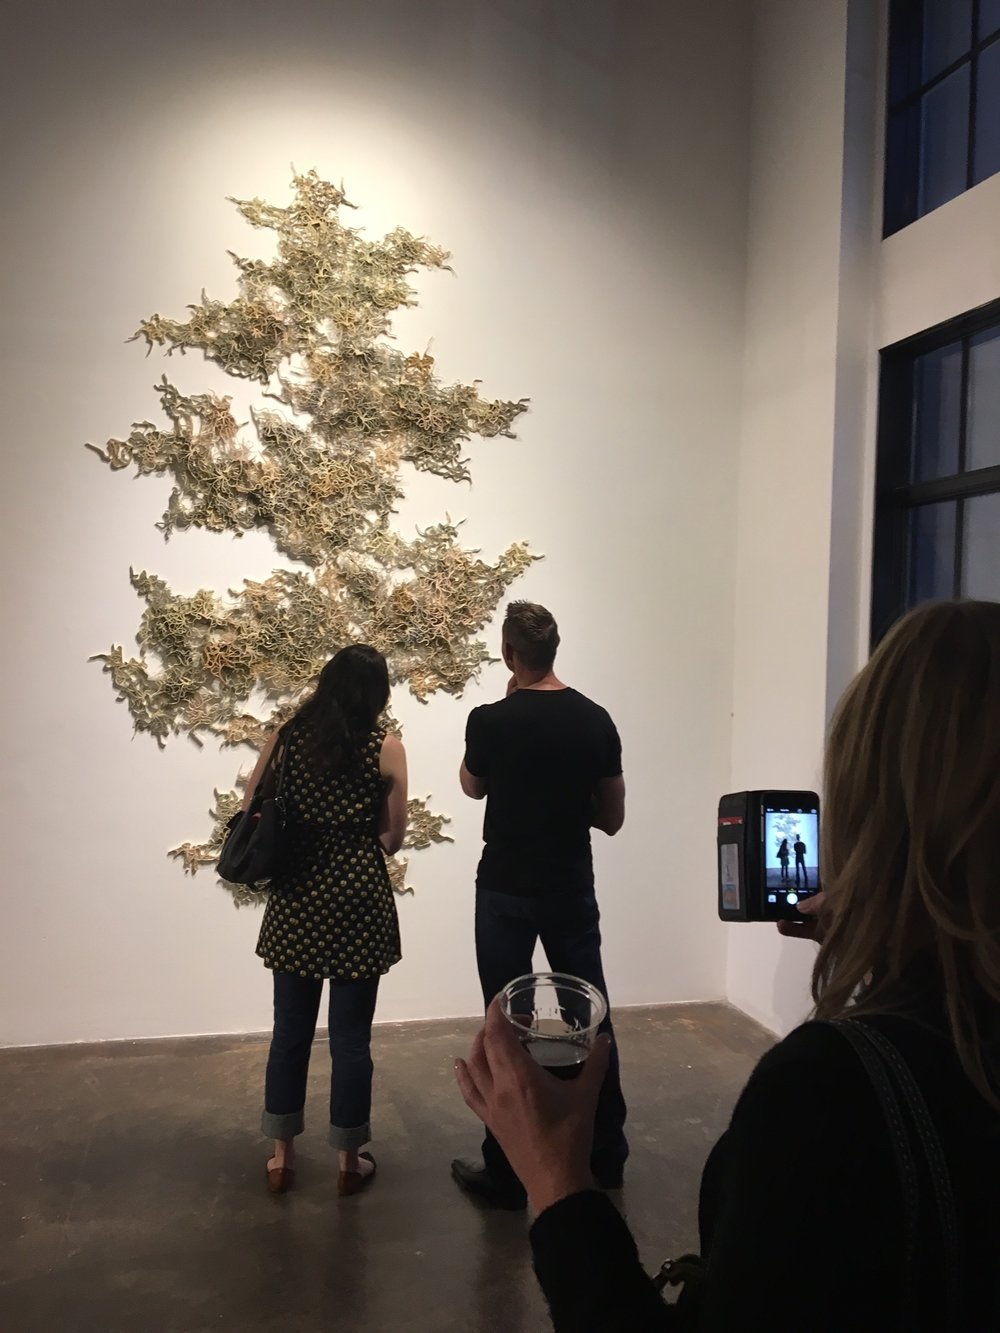 Opening night of Inherent Intent at Walker Fine Art in Denver, September 2016. Artwork: Cerebral Mapping, by Jessica Drenk, made of books and wax.